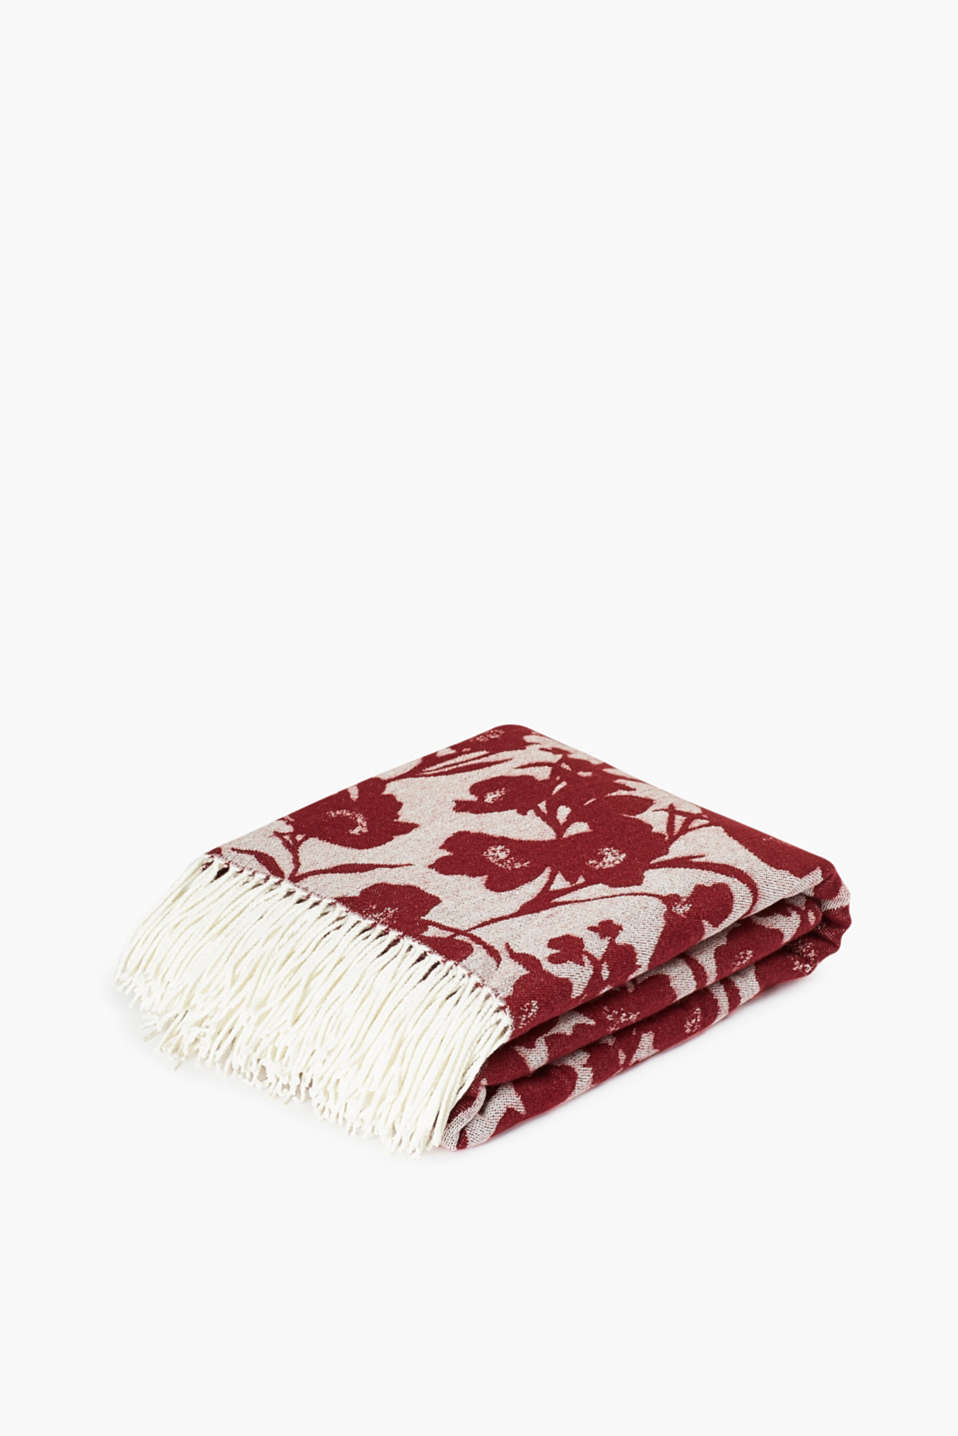 With twisted fringing and a floral pattern: blanket in a soft fabric